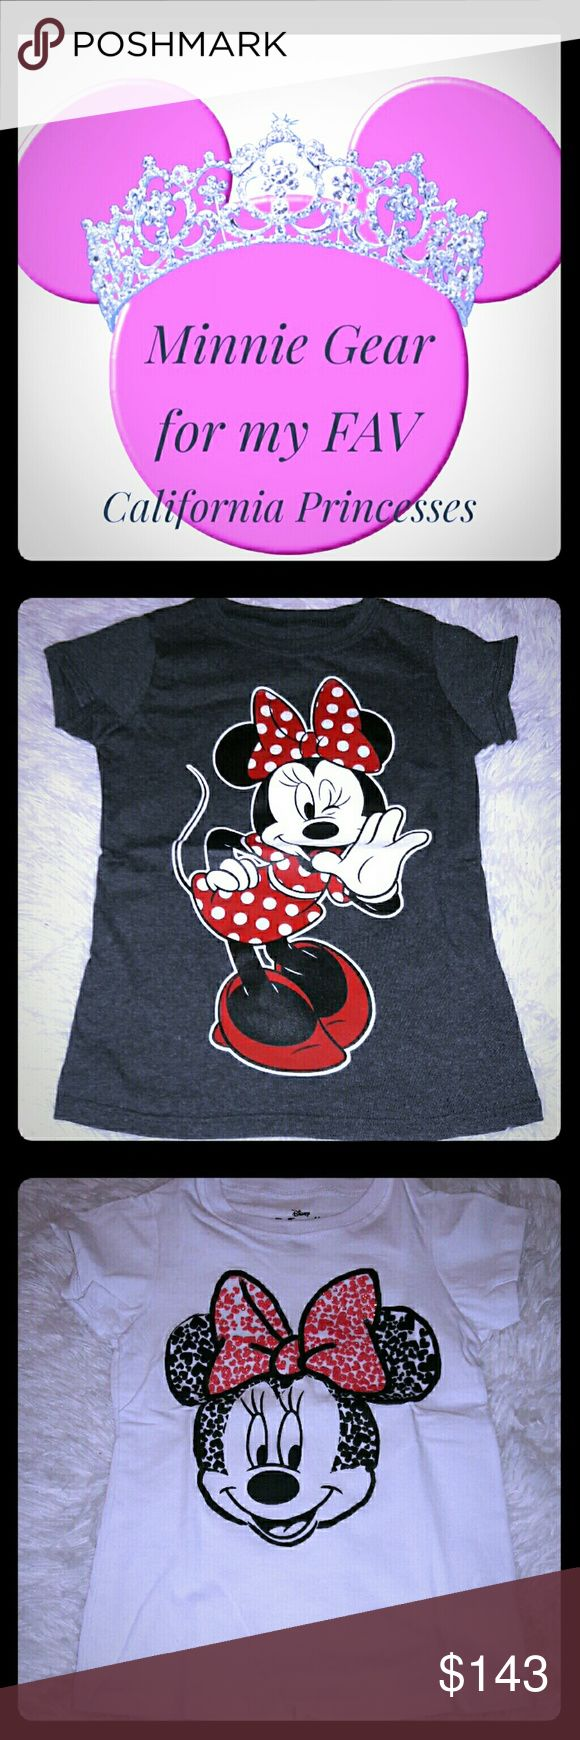 Minnie Mouse Gear 1 white Minnie in 6/6X...2 gray size 4/5 & 6/6X..blue Minnie in 6/6X...pink Life of Pets 4 and 6 (maybe was just size 4)..and didn't know if you still wanted dress 5T or 4T because of it getting cooler..just lmk what you want me to take out..or missed California Girls Other